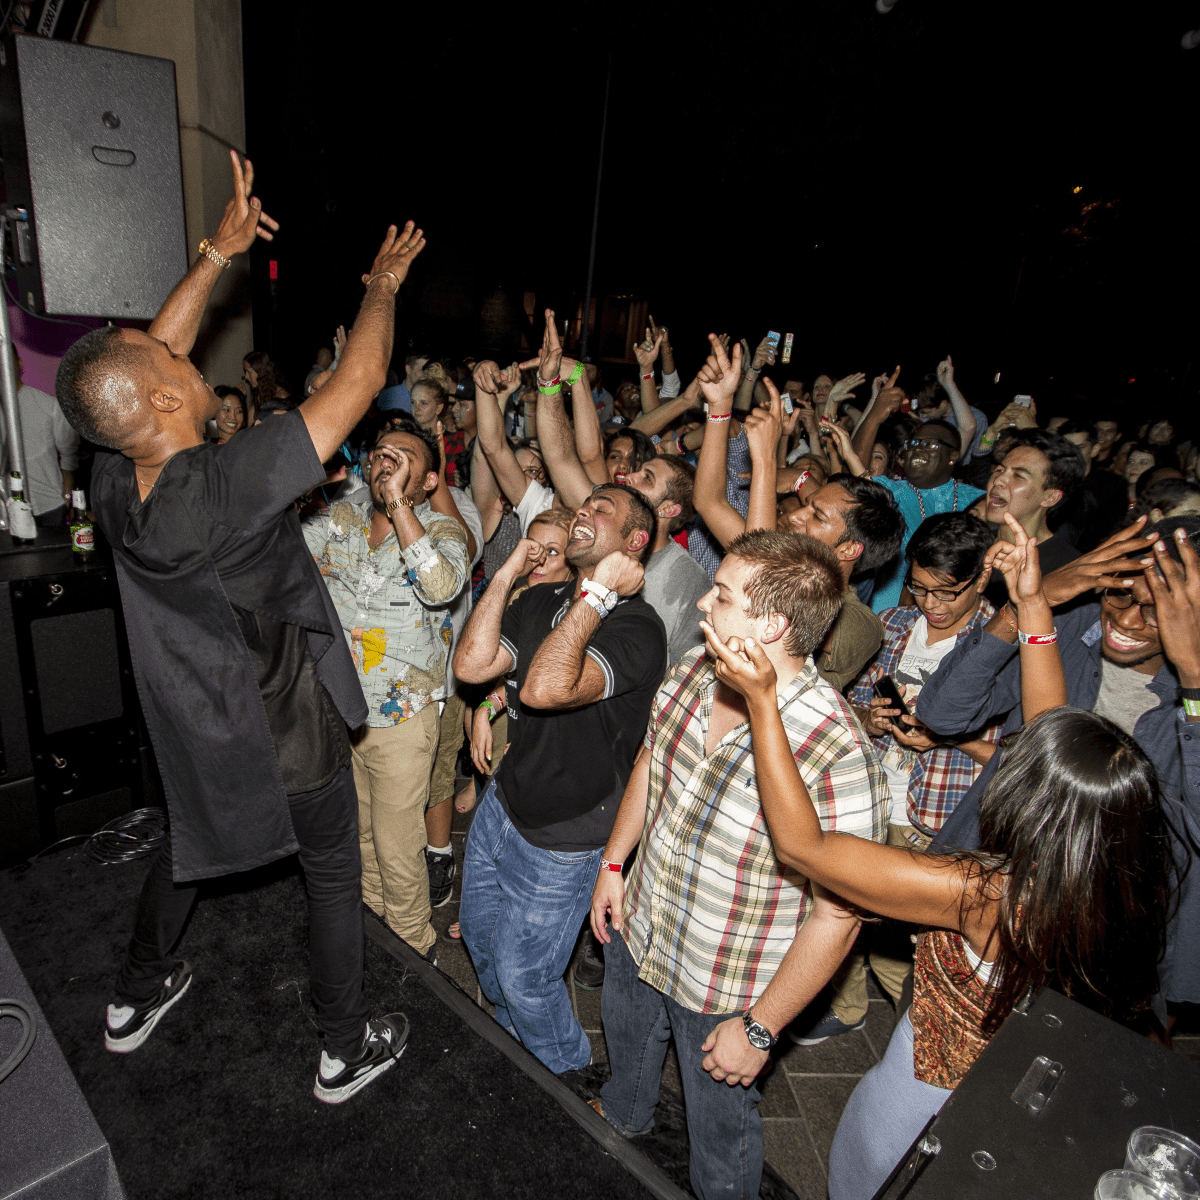 Lunice at the MFAH Mixed Media Party June 2014